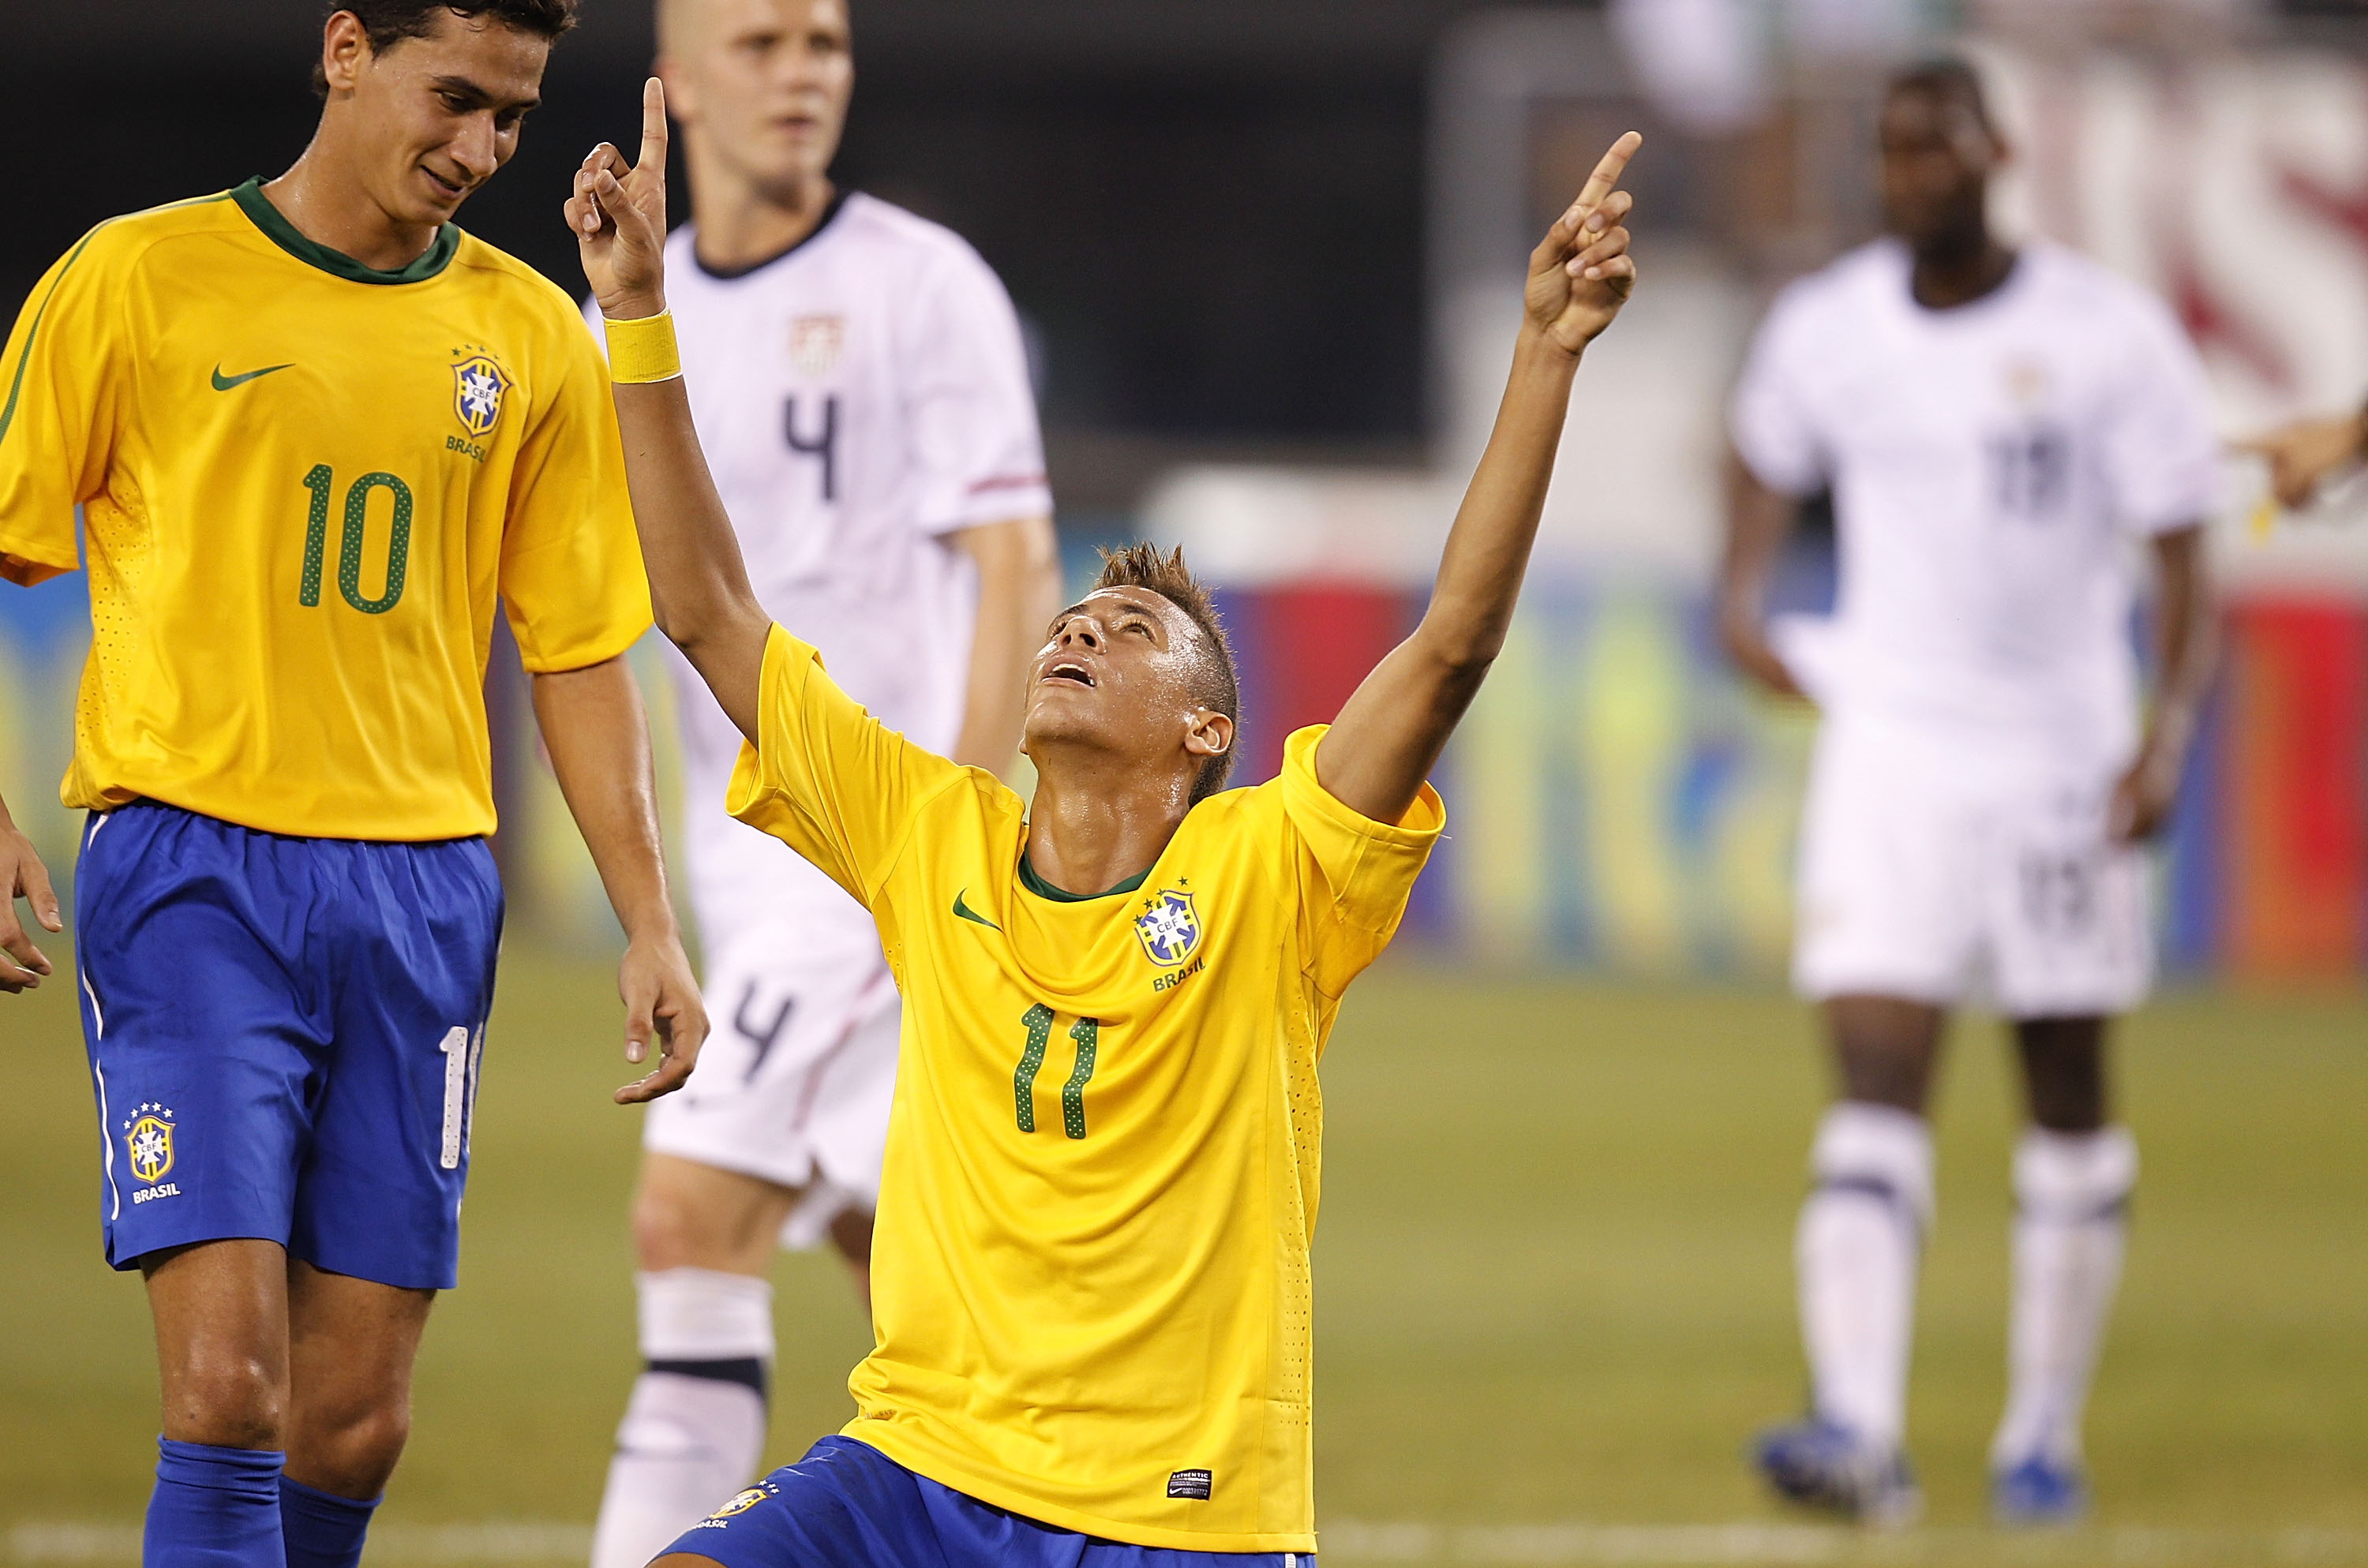 Neymar relishing added responsibility after being named Brazil captain